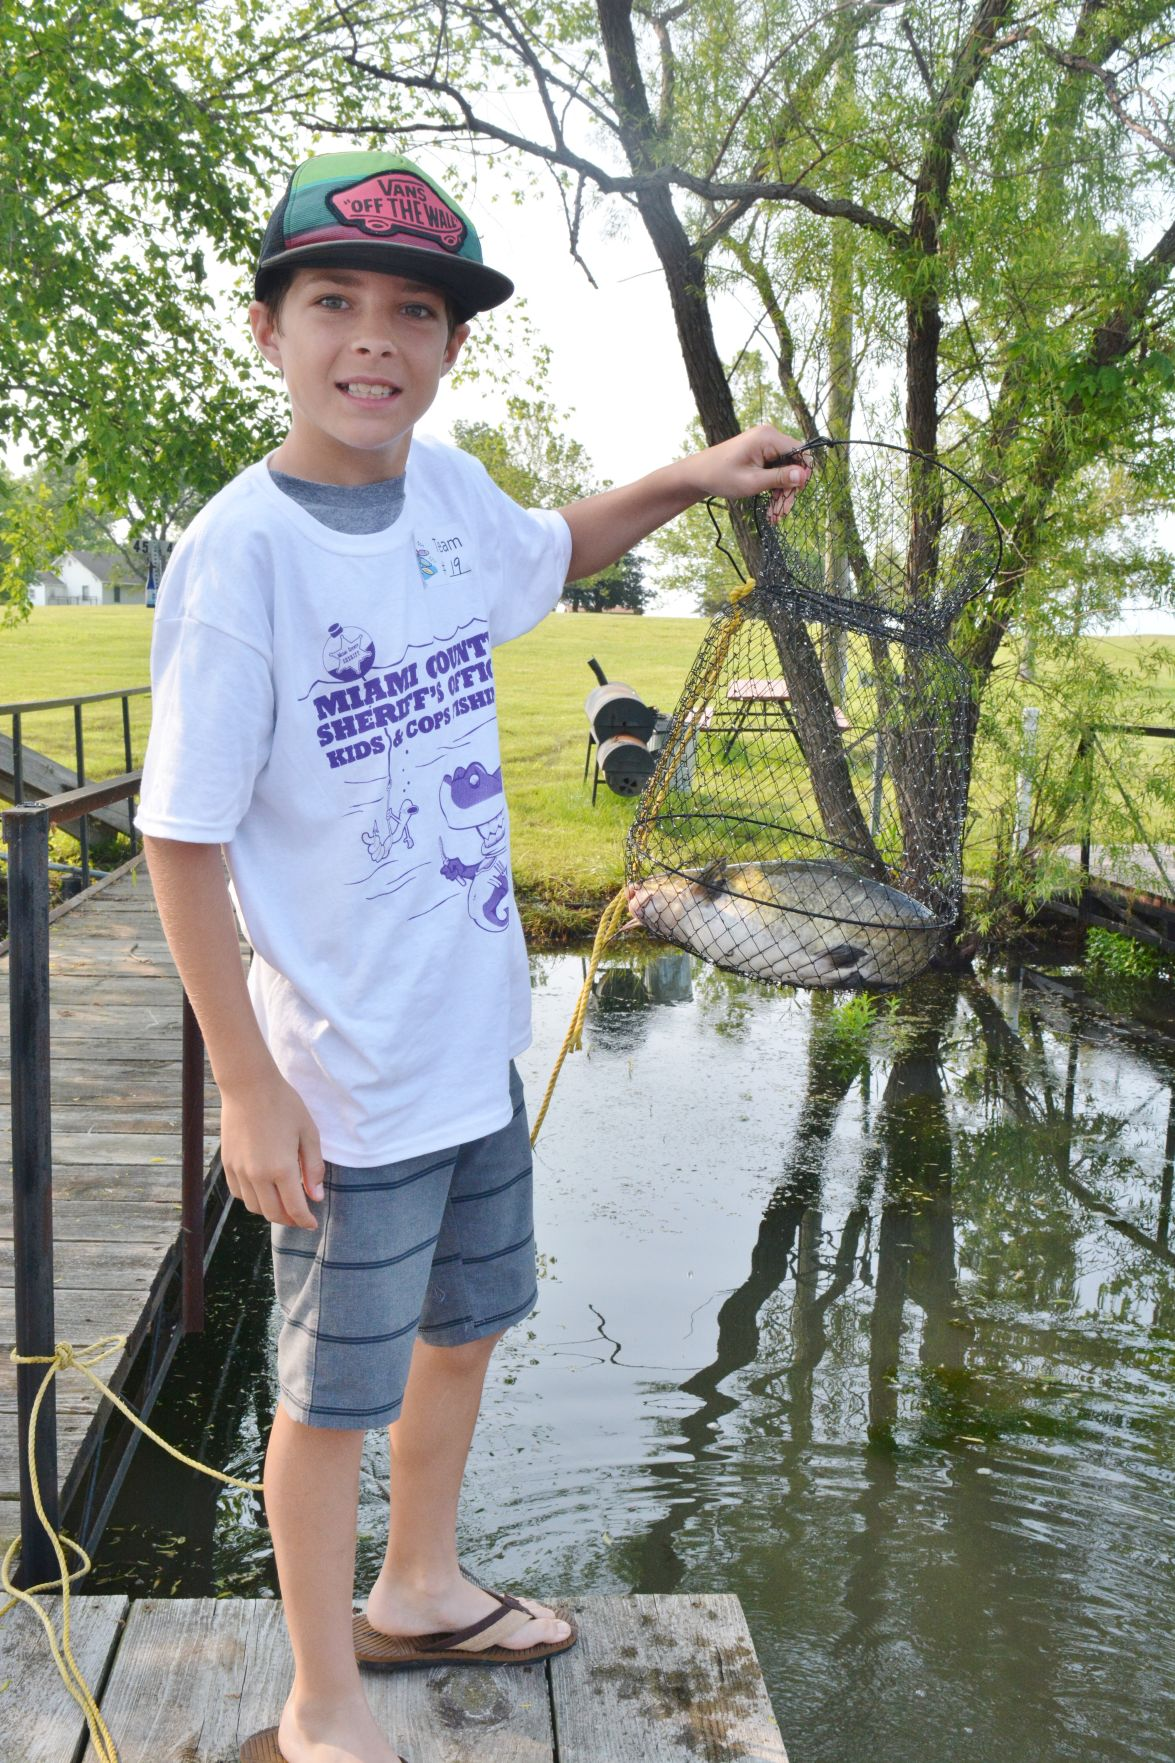 Kids and cops team up for fishing tournament